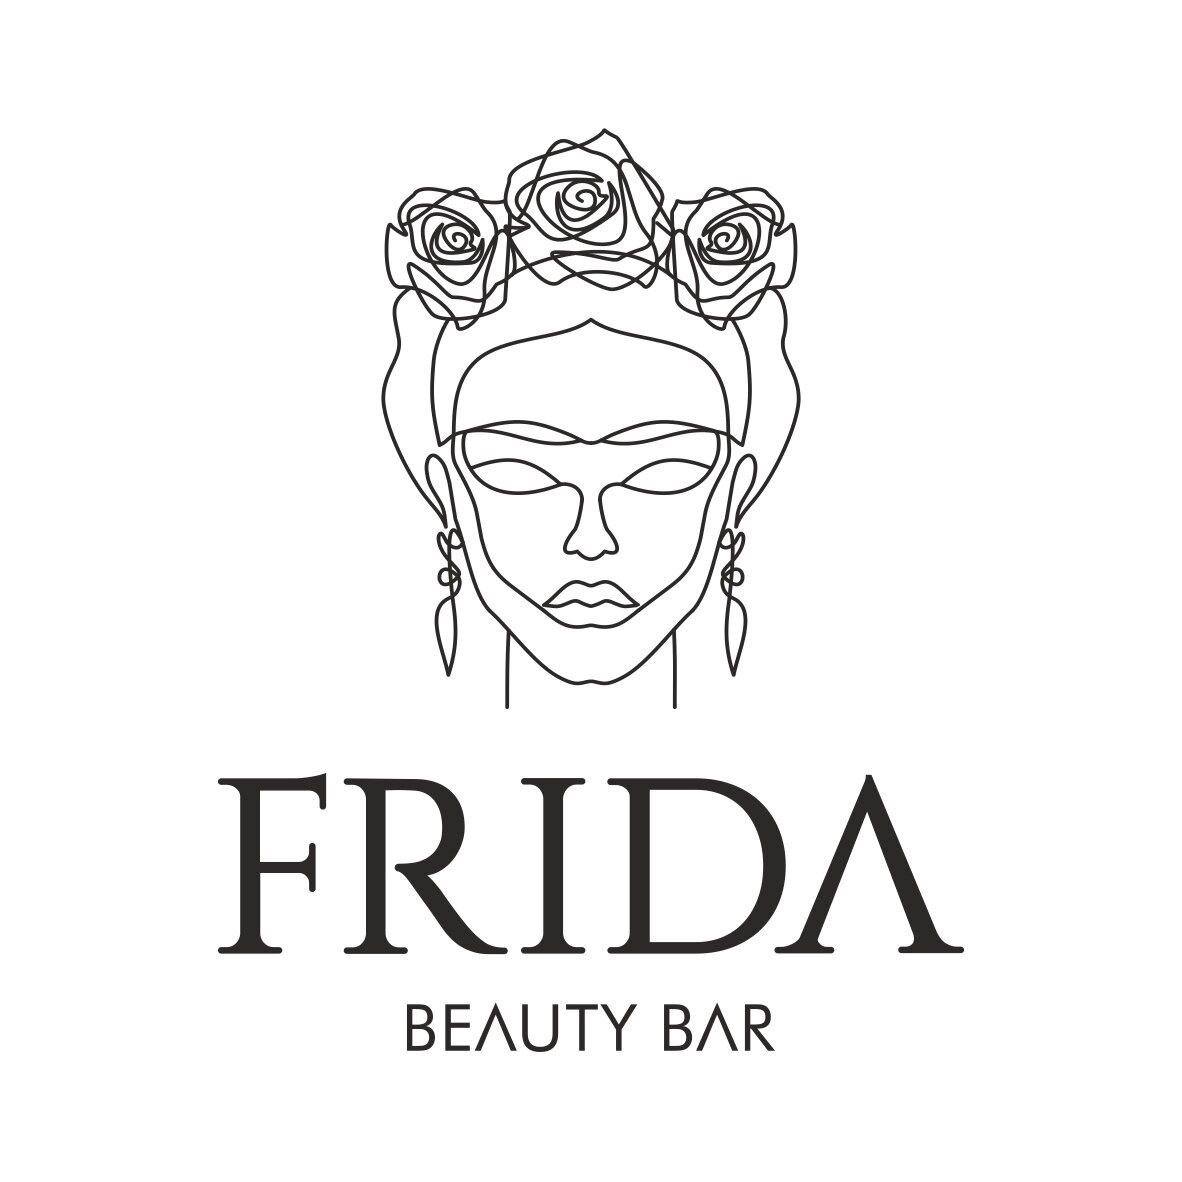 FRIDA BEAUTY BAR